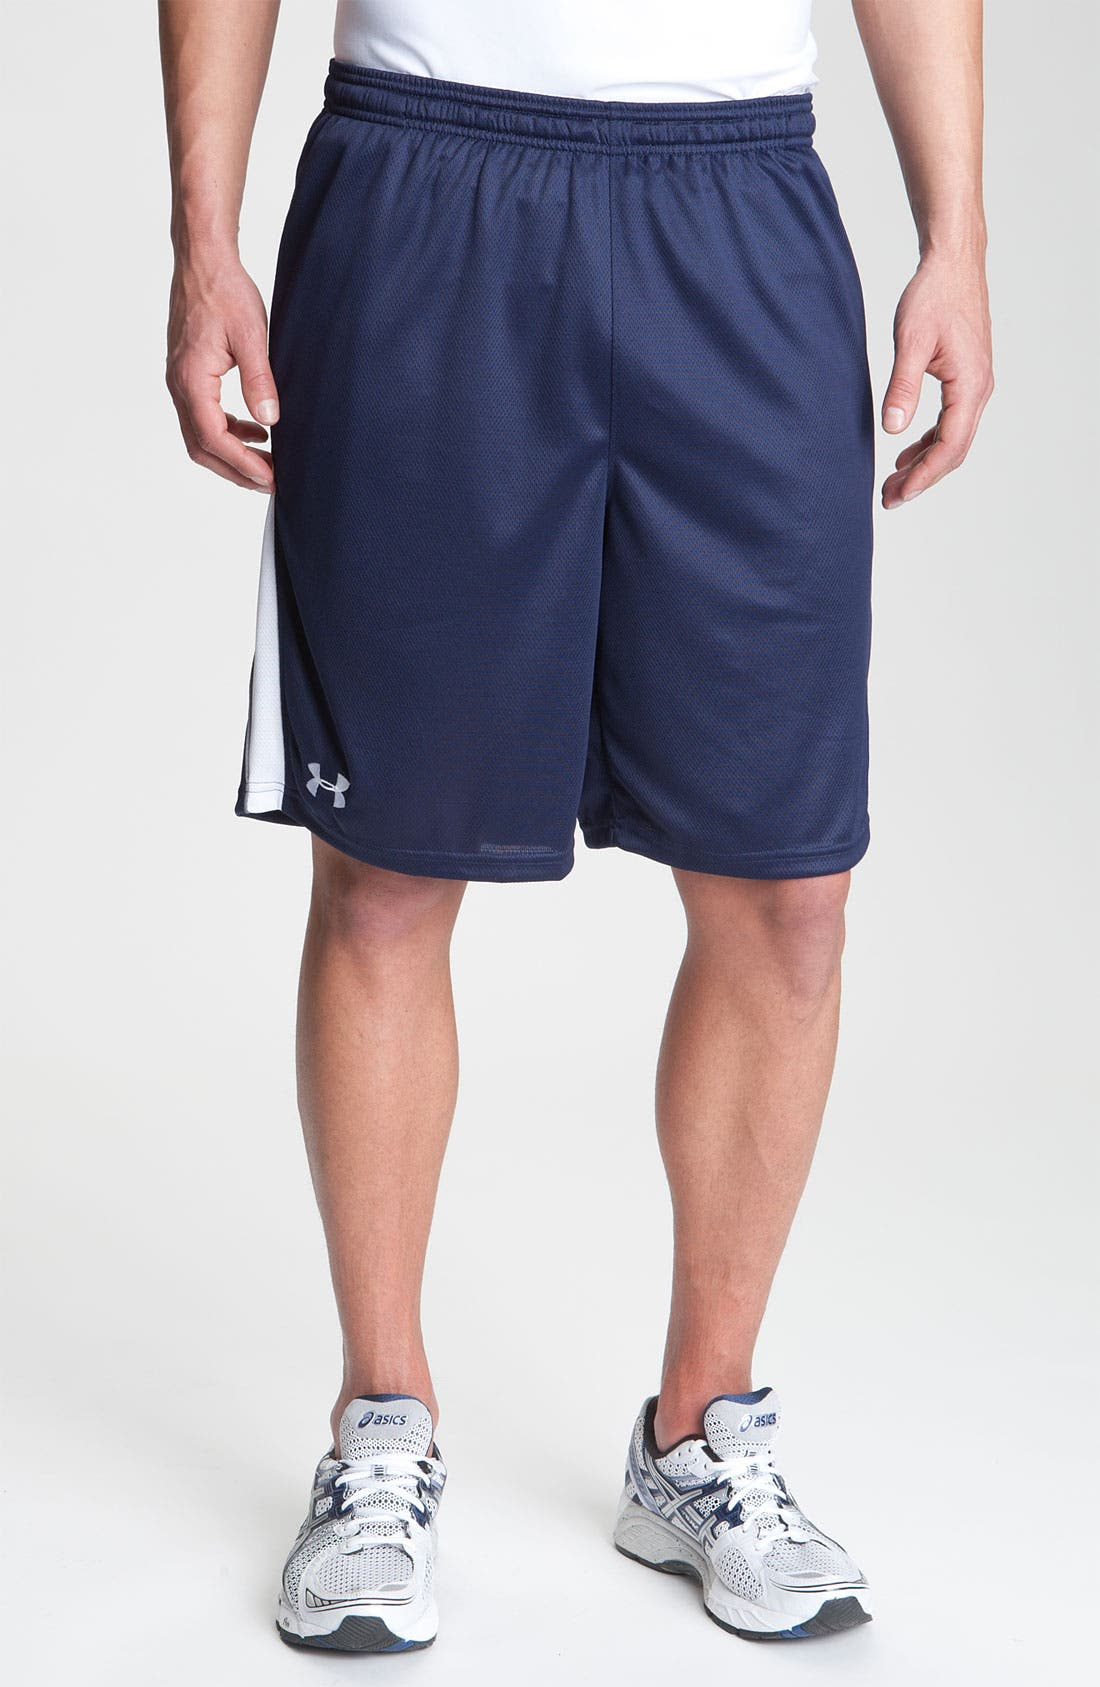 Alternate Image 1 Selected - Under Armour 'Flex Stripe' Shorts